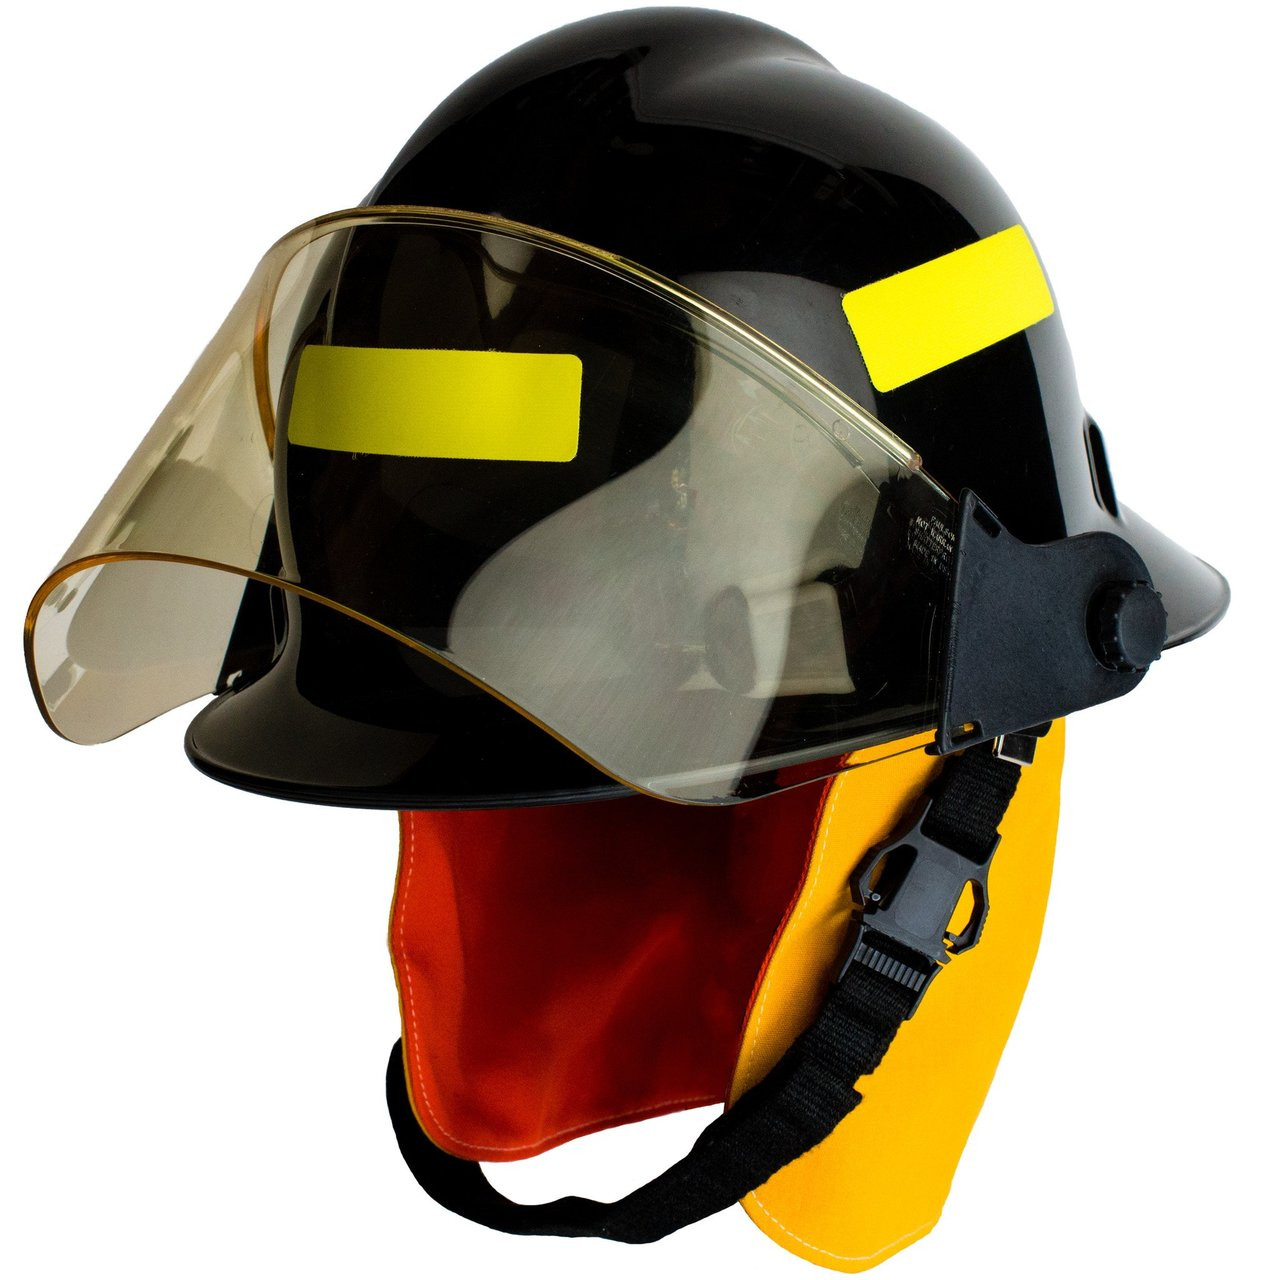 Phenix First Due Structural Fire Helmet